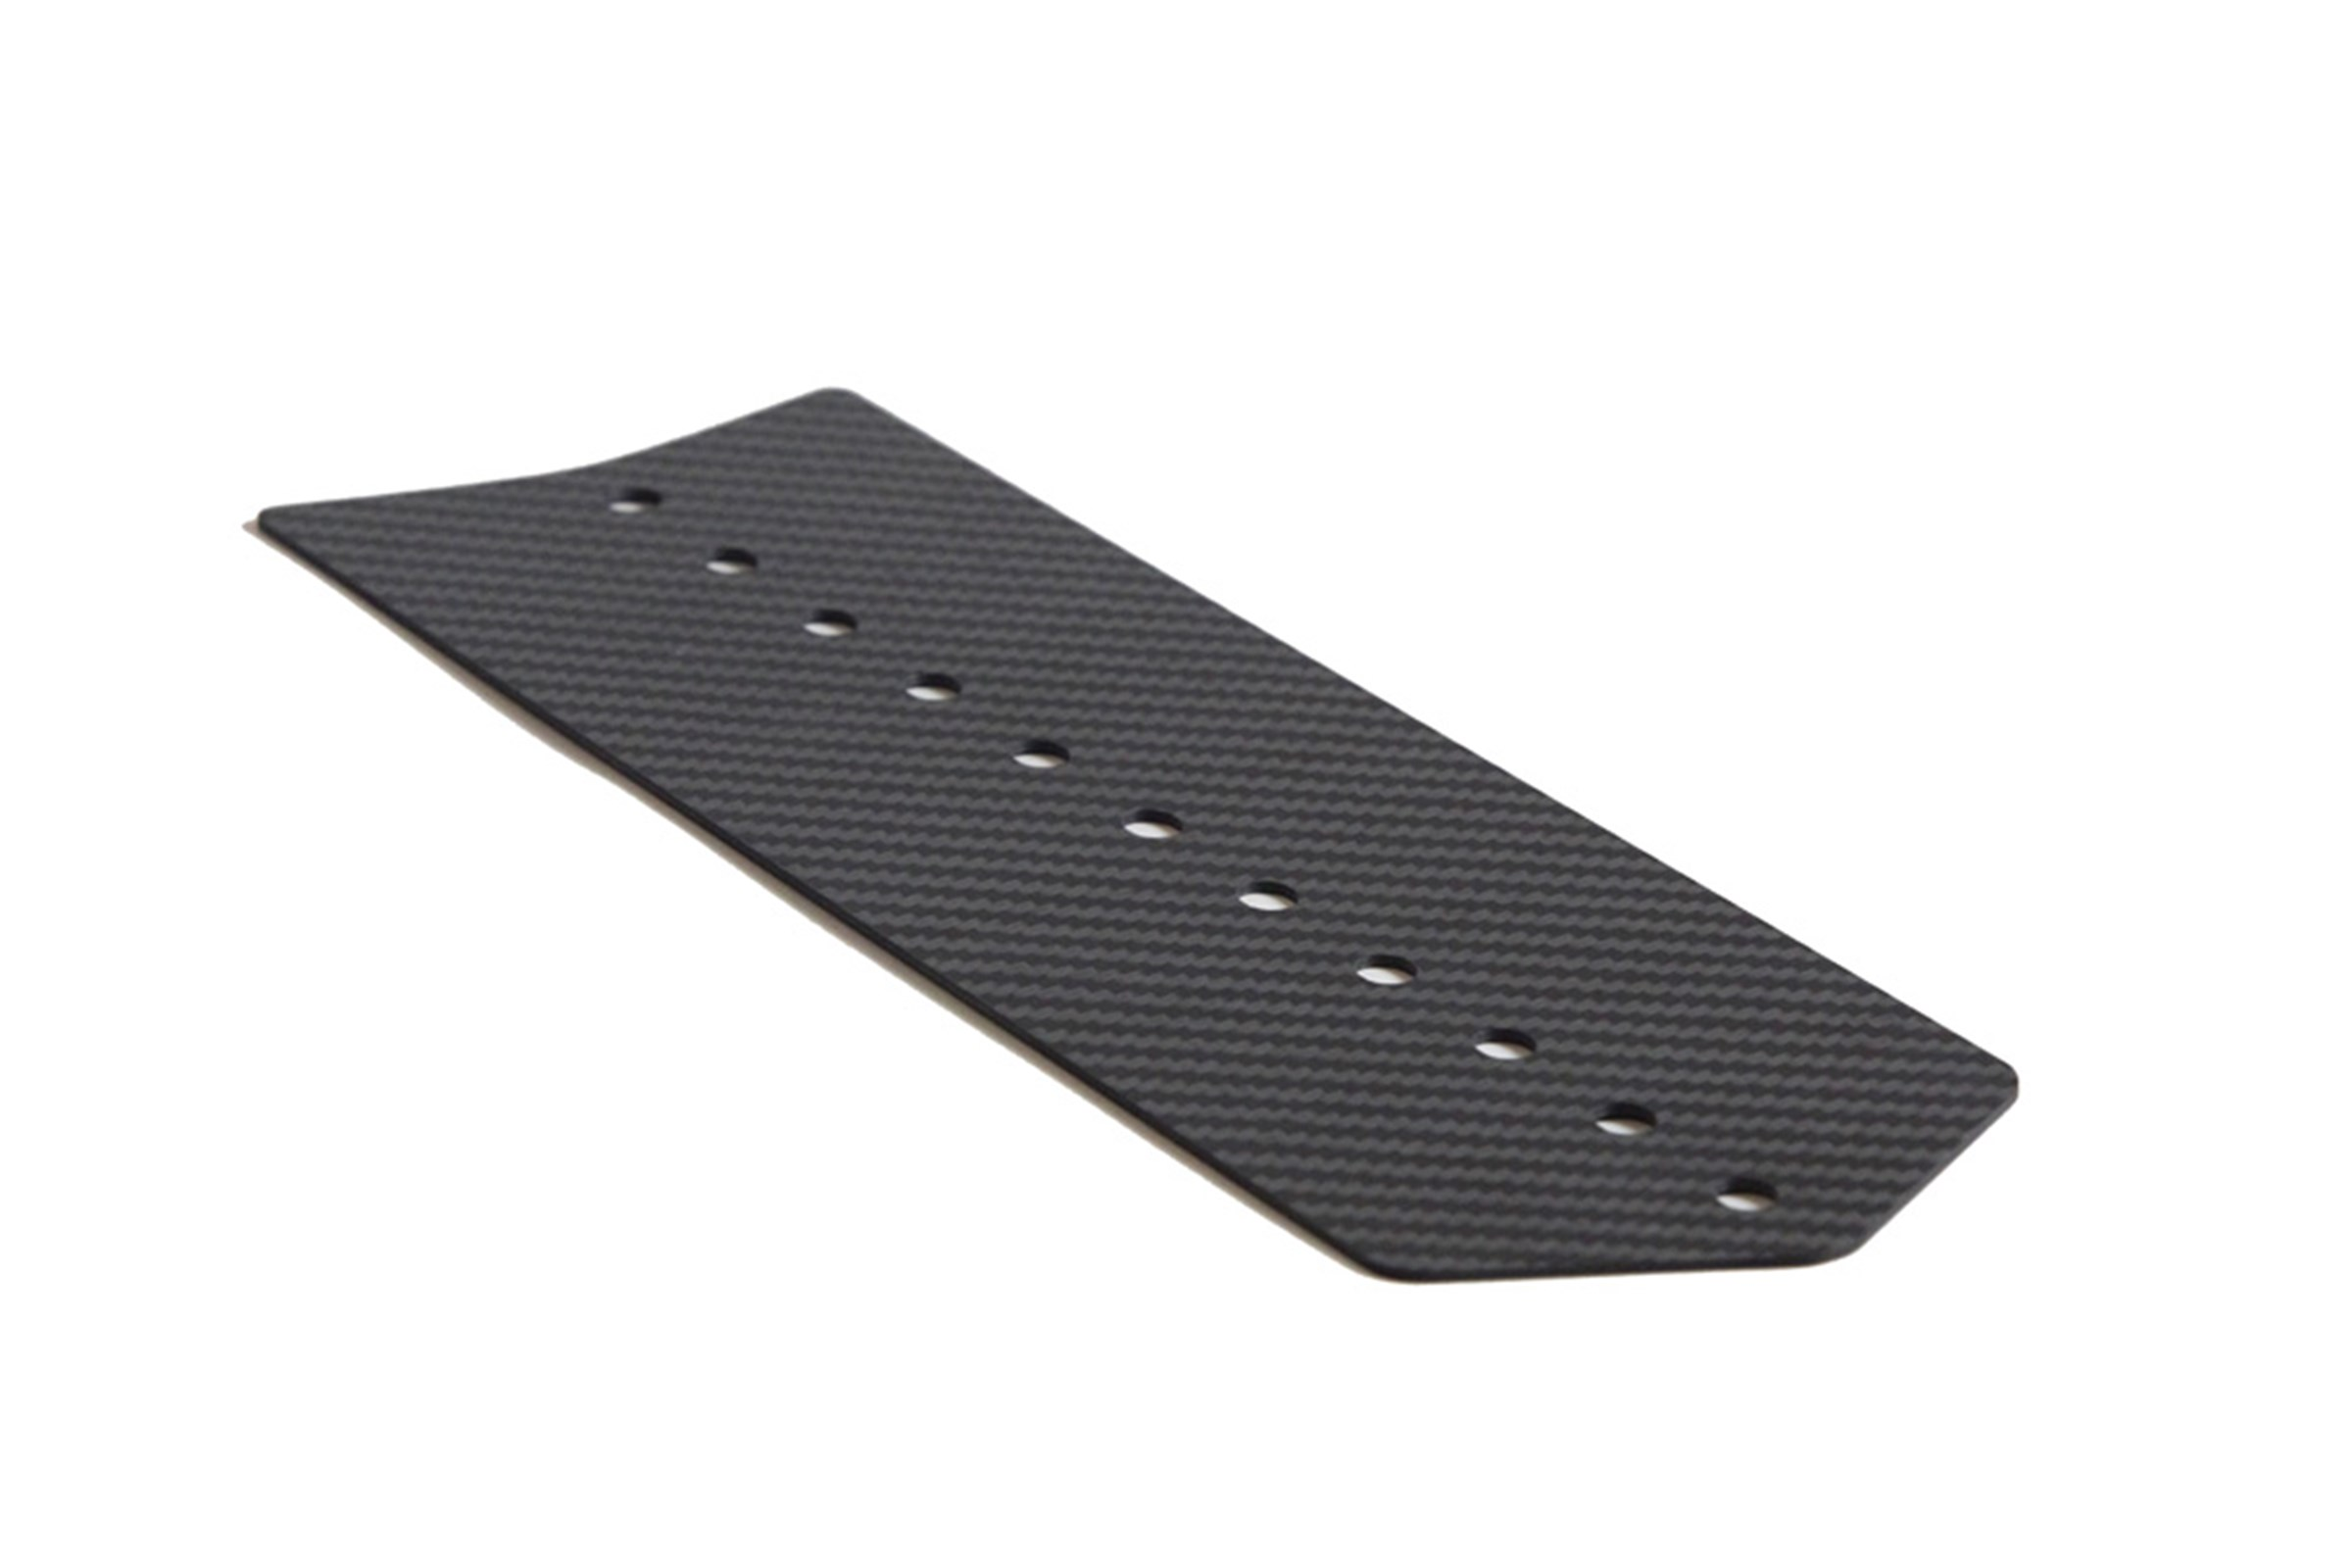 Armstrong Foils - Adjustable carbon tail kick pad